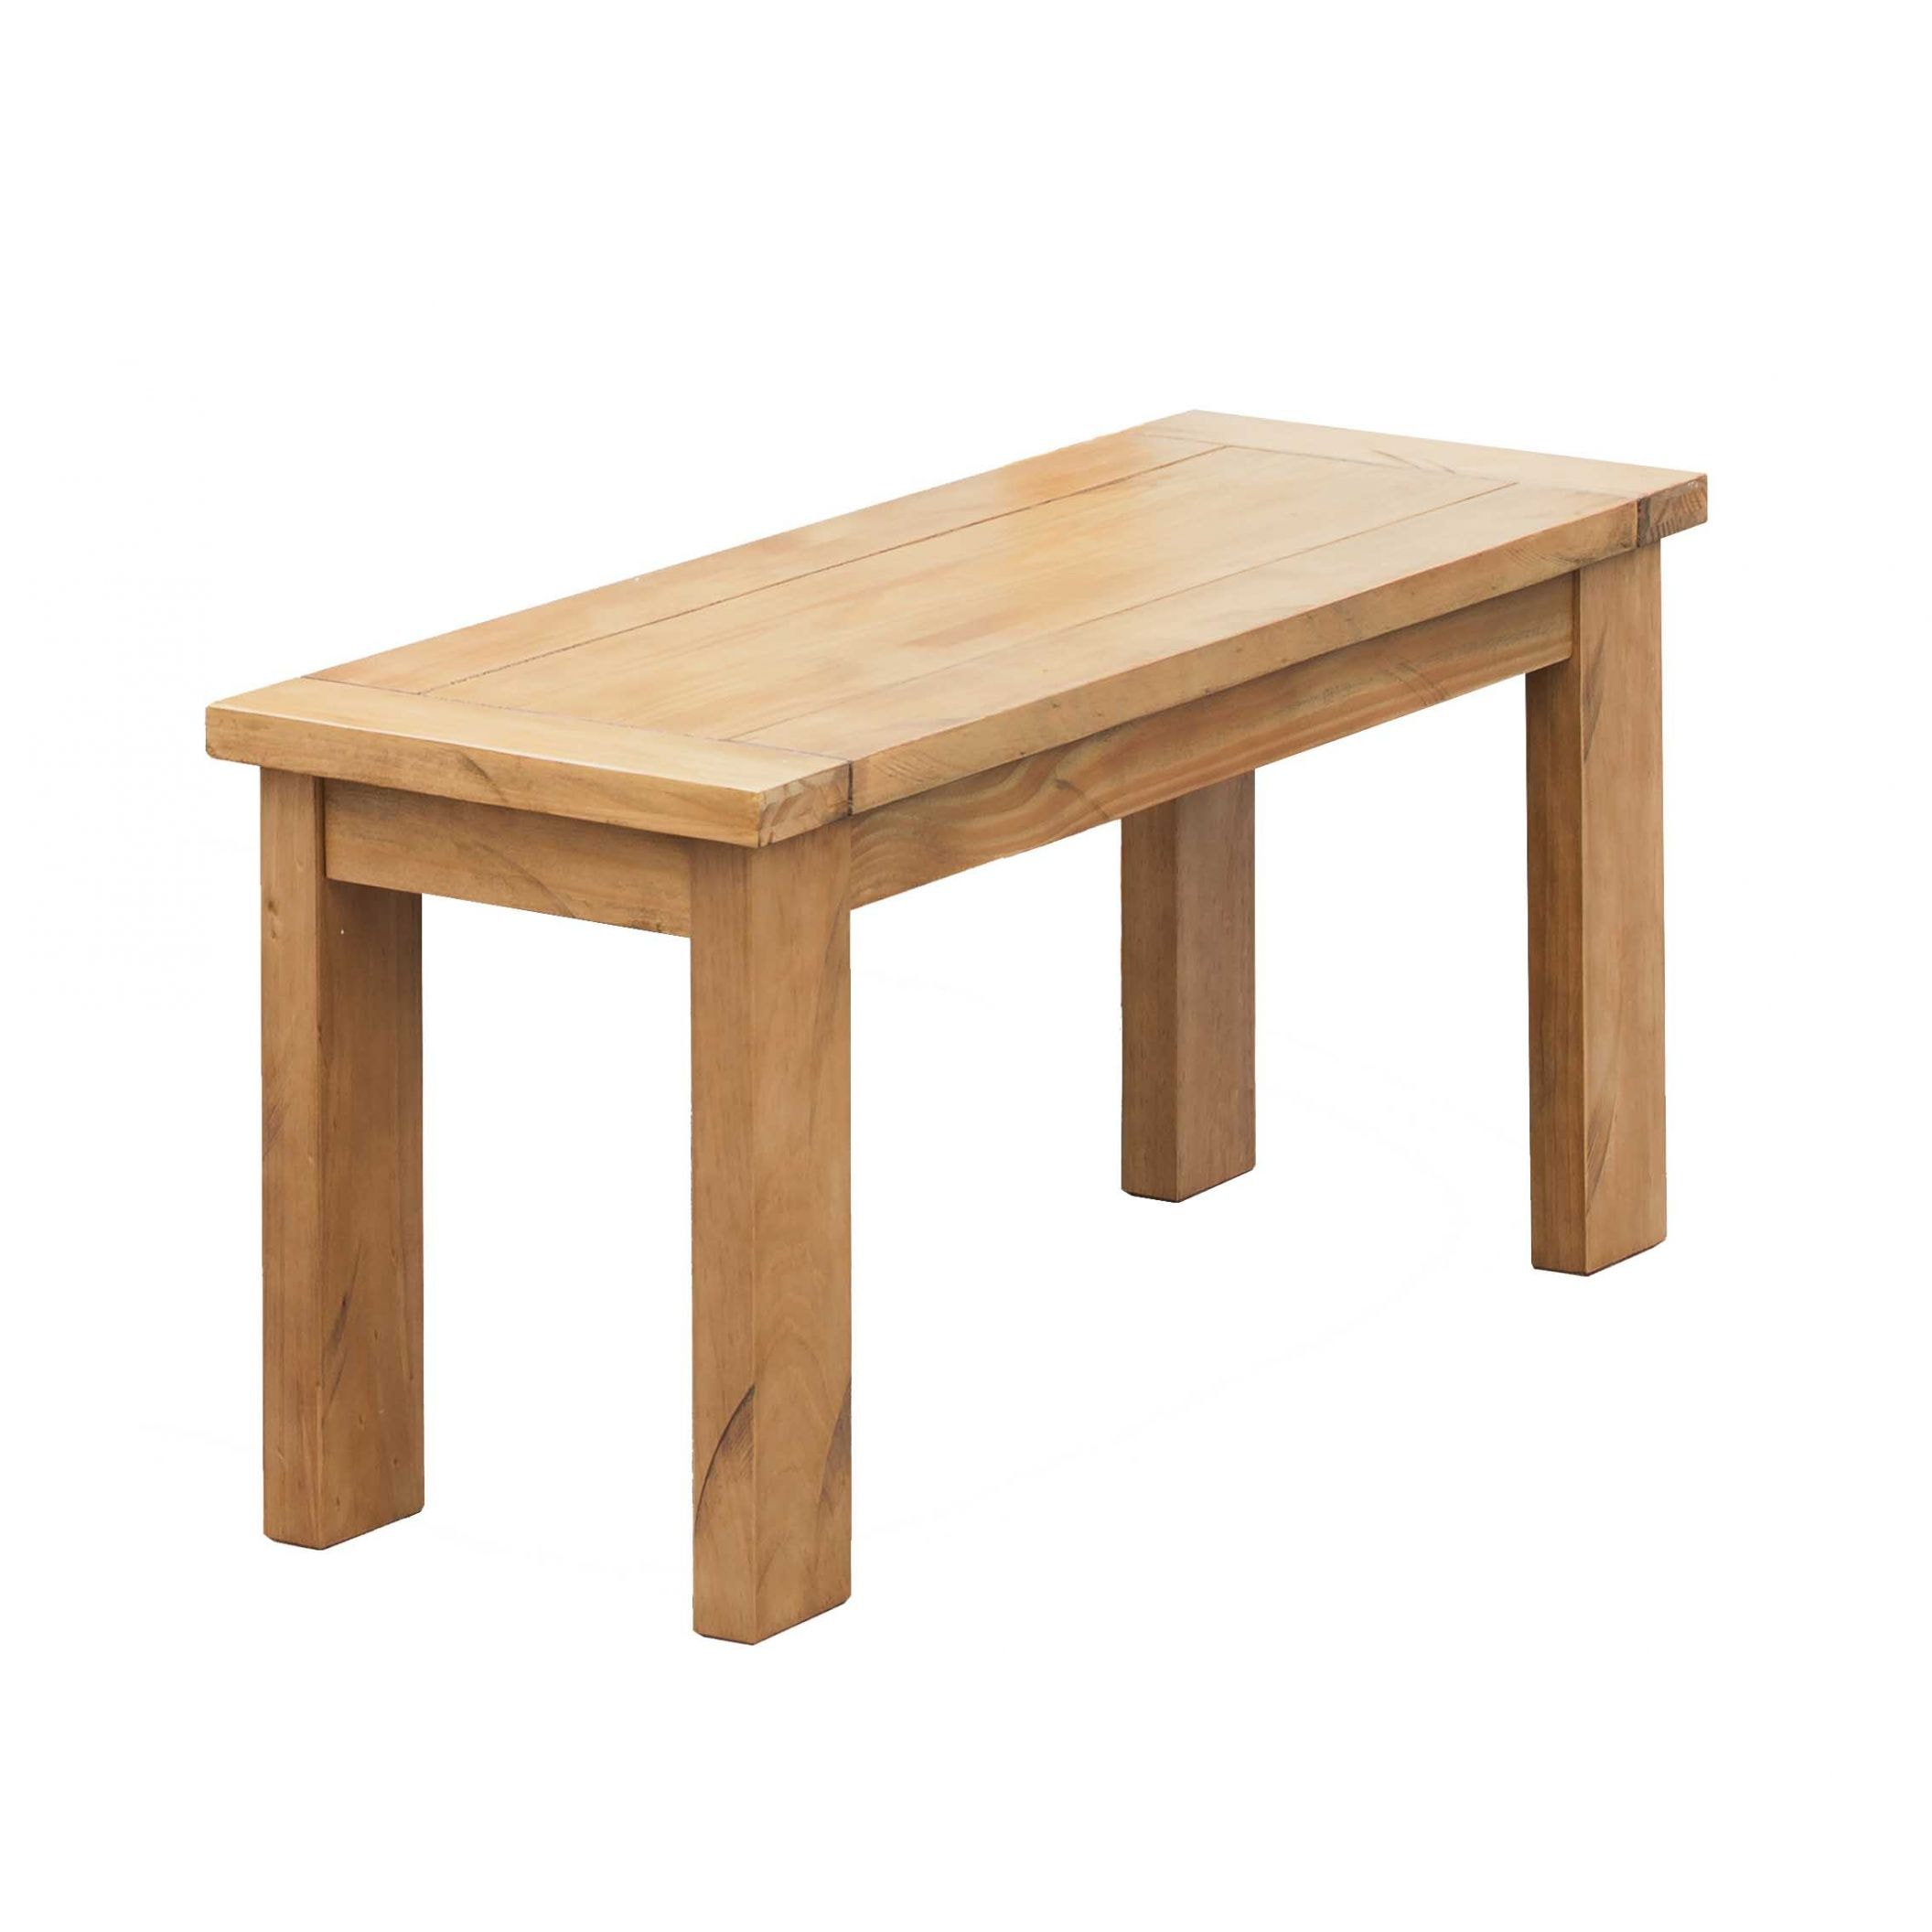 Boden pine bench pine furniture available online now for Boden direct uk